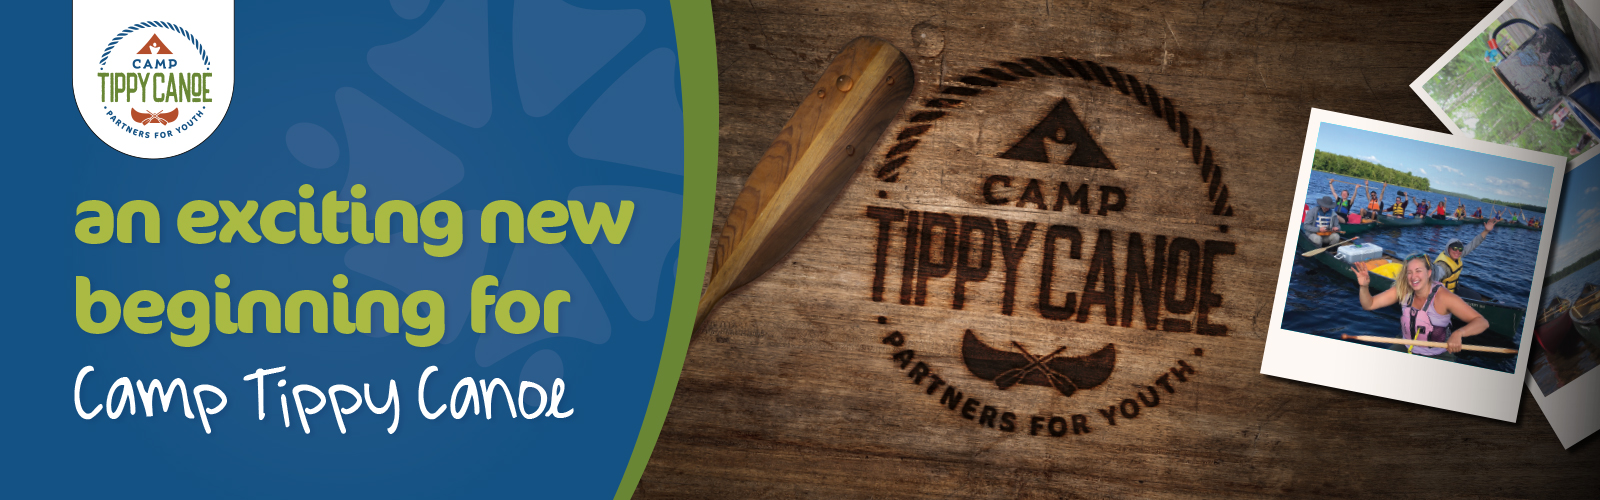 An exciting new beginning for Camp Tippy Canoe